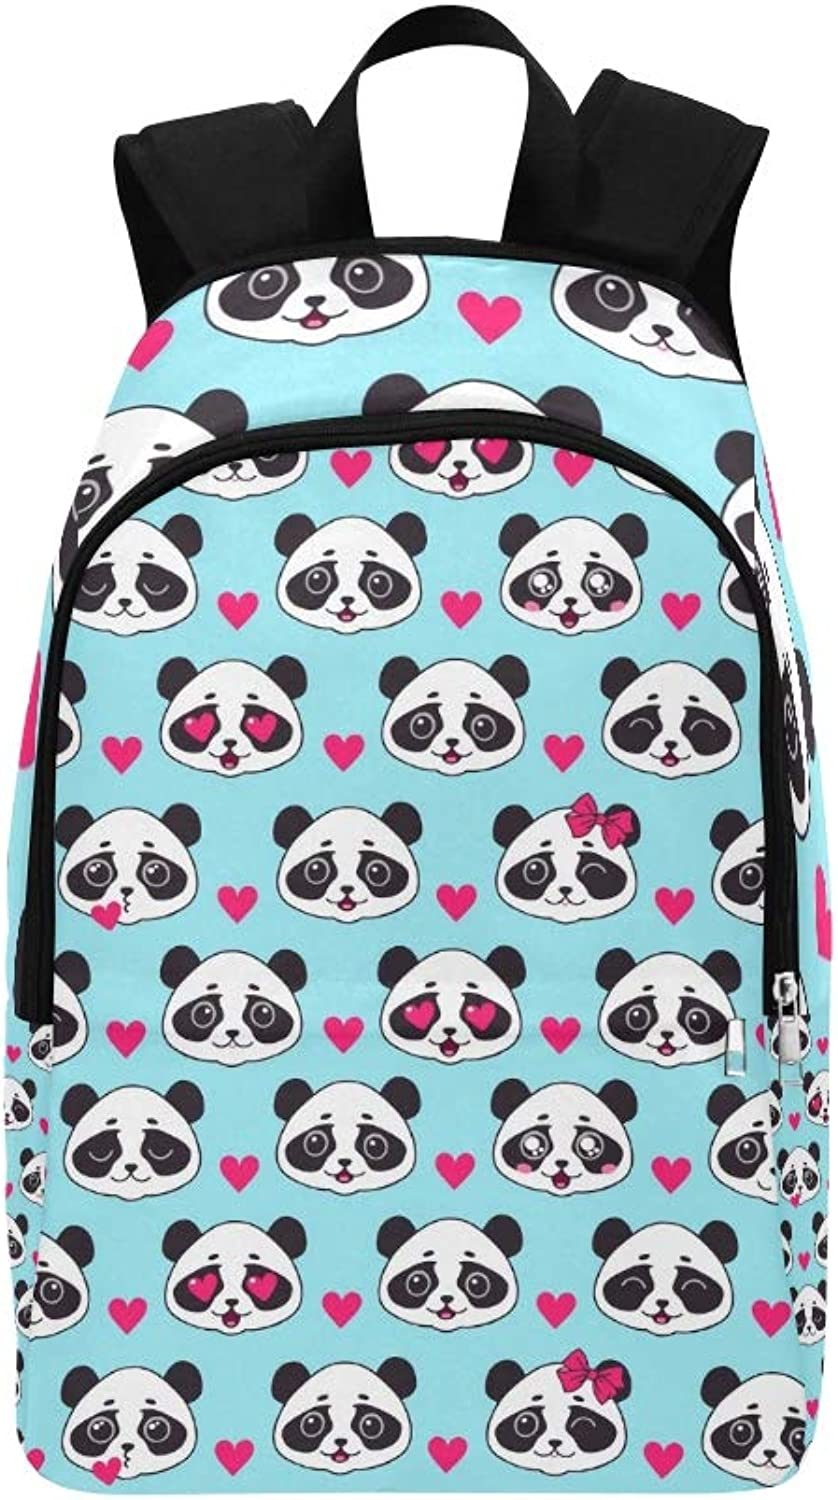 Cute Panda Pandas Face Casual Daypack Travel Bag College School Backpack for Mens and Women